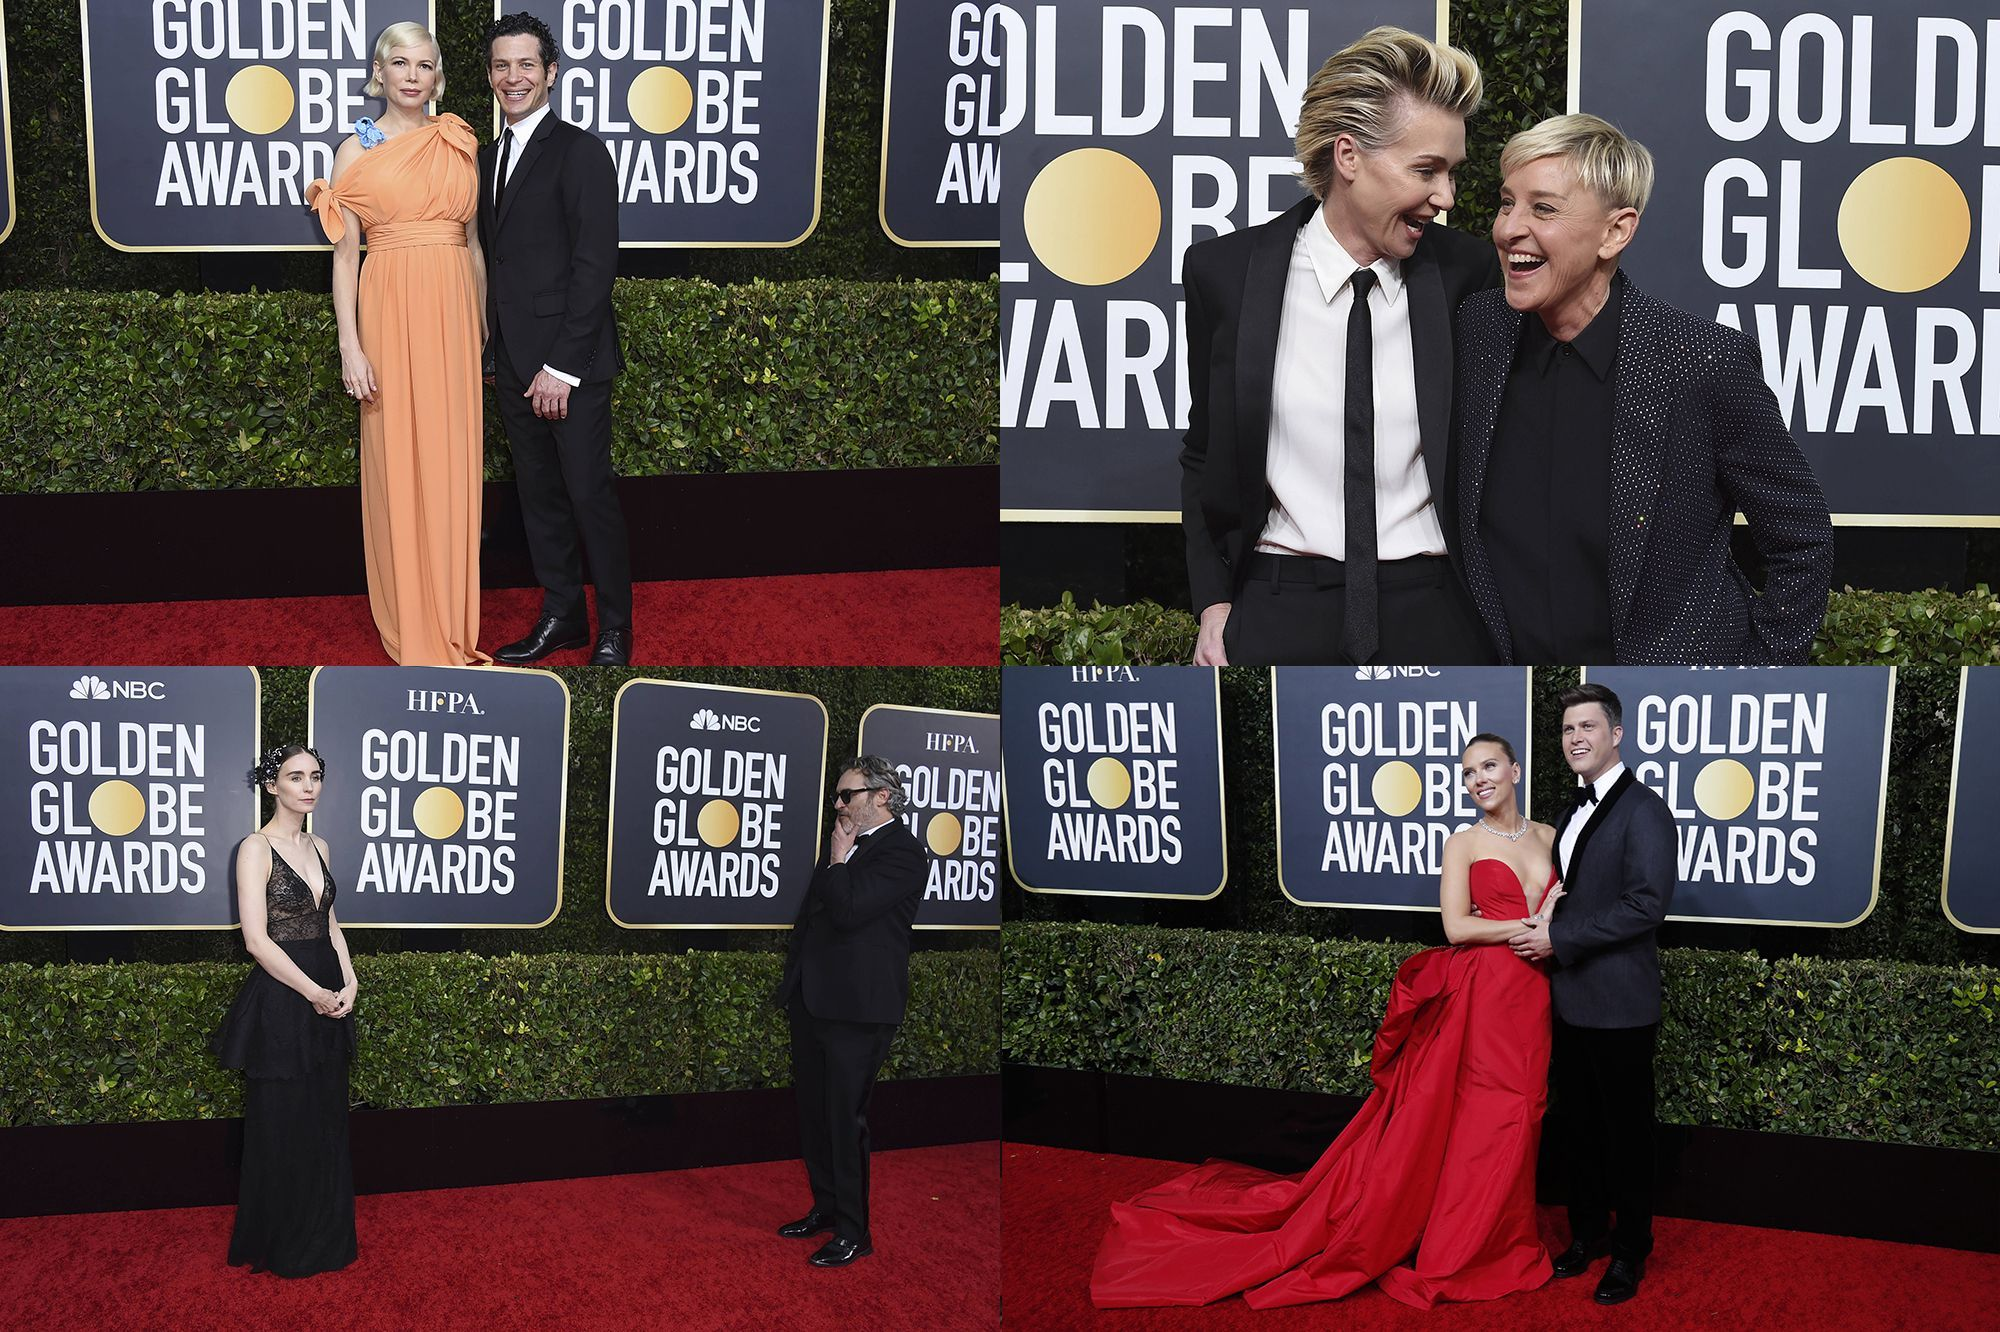 golden globes 2020 les couples stars